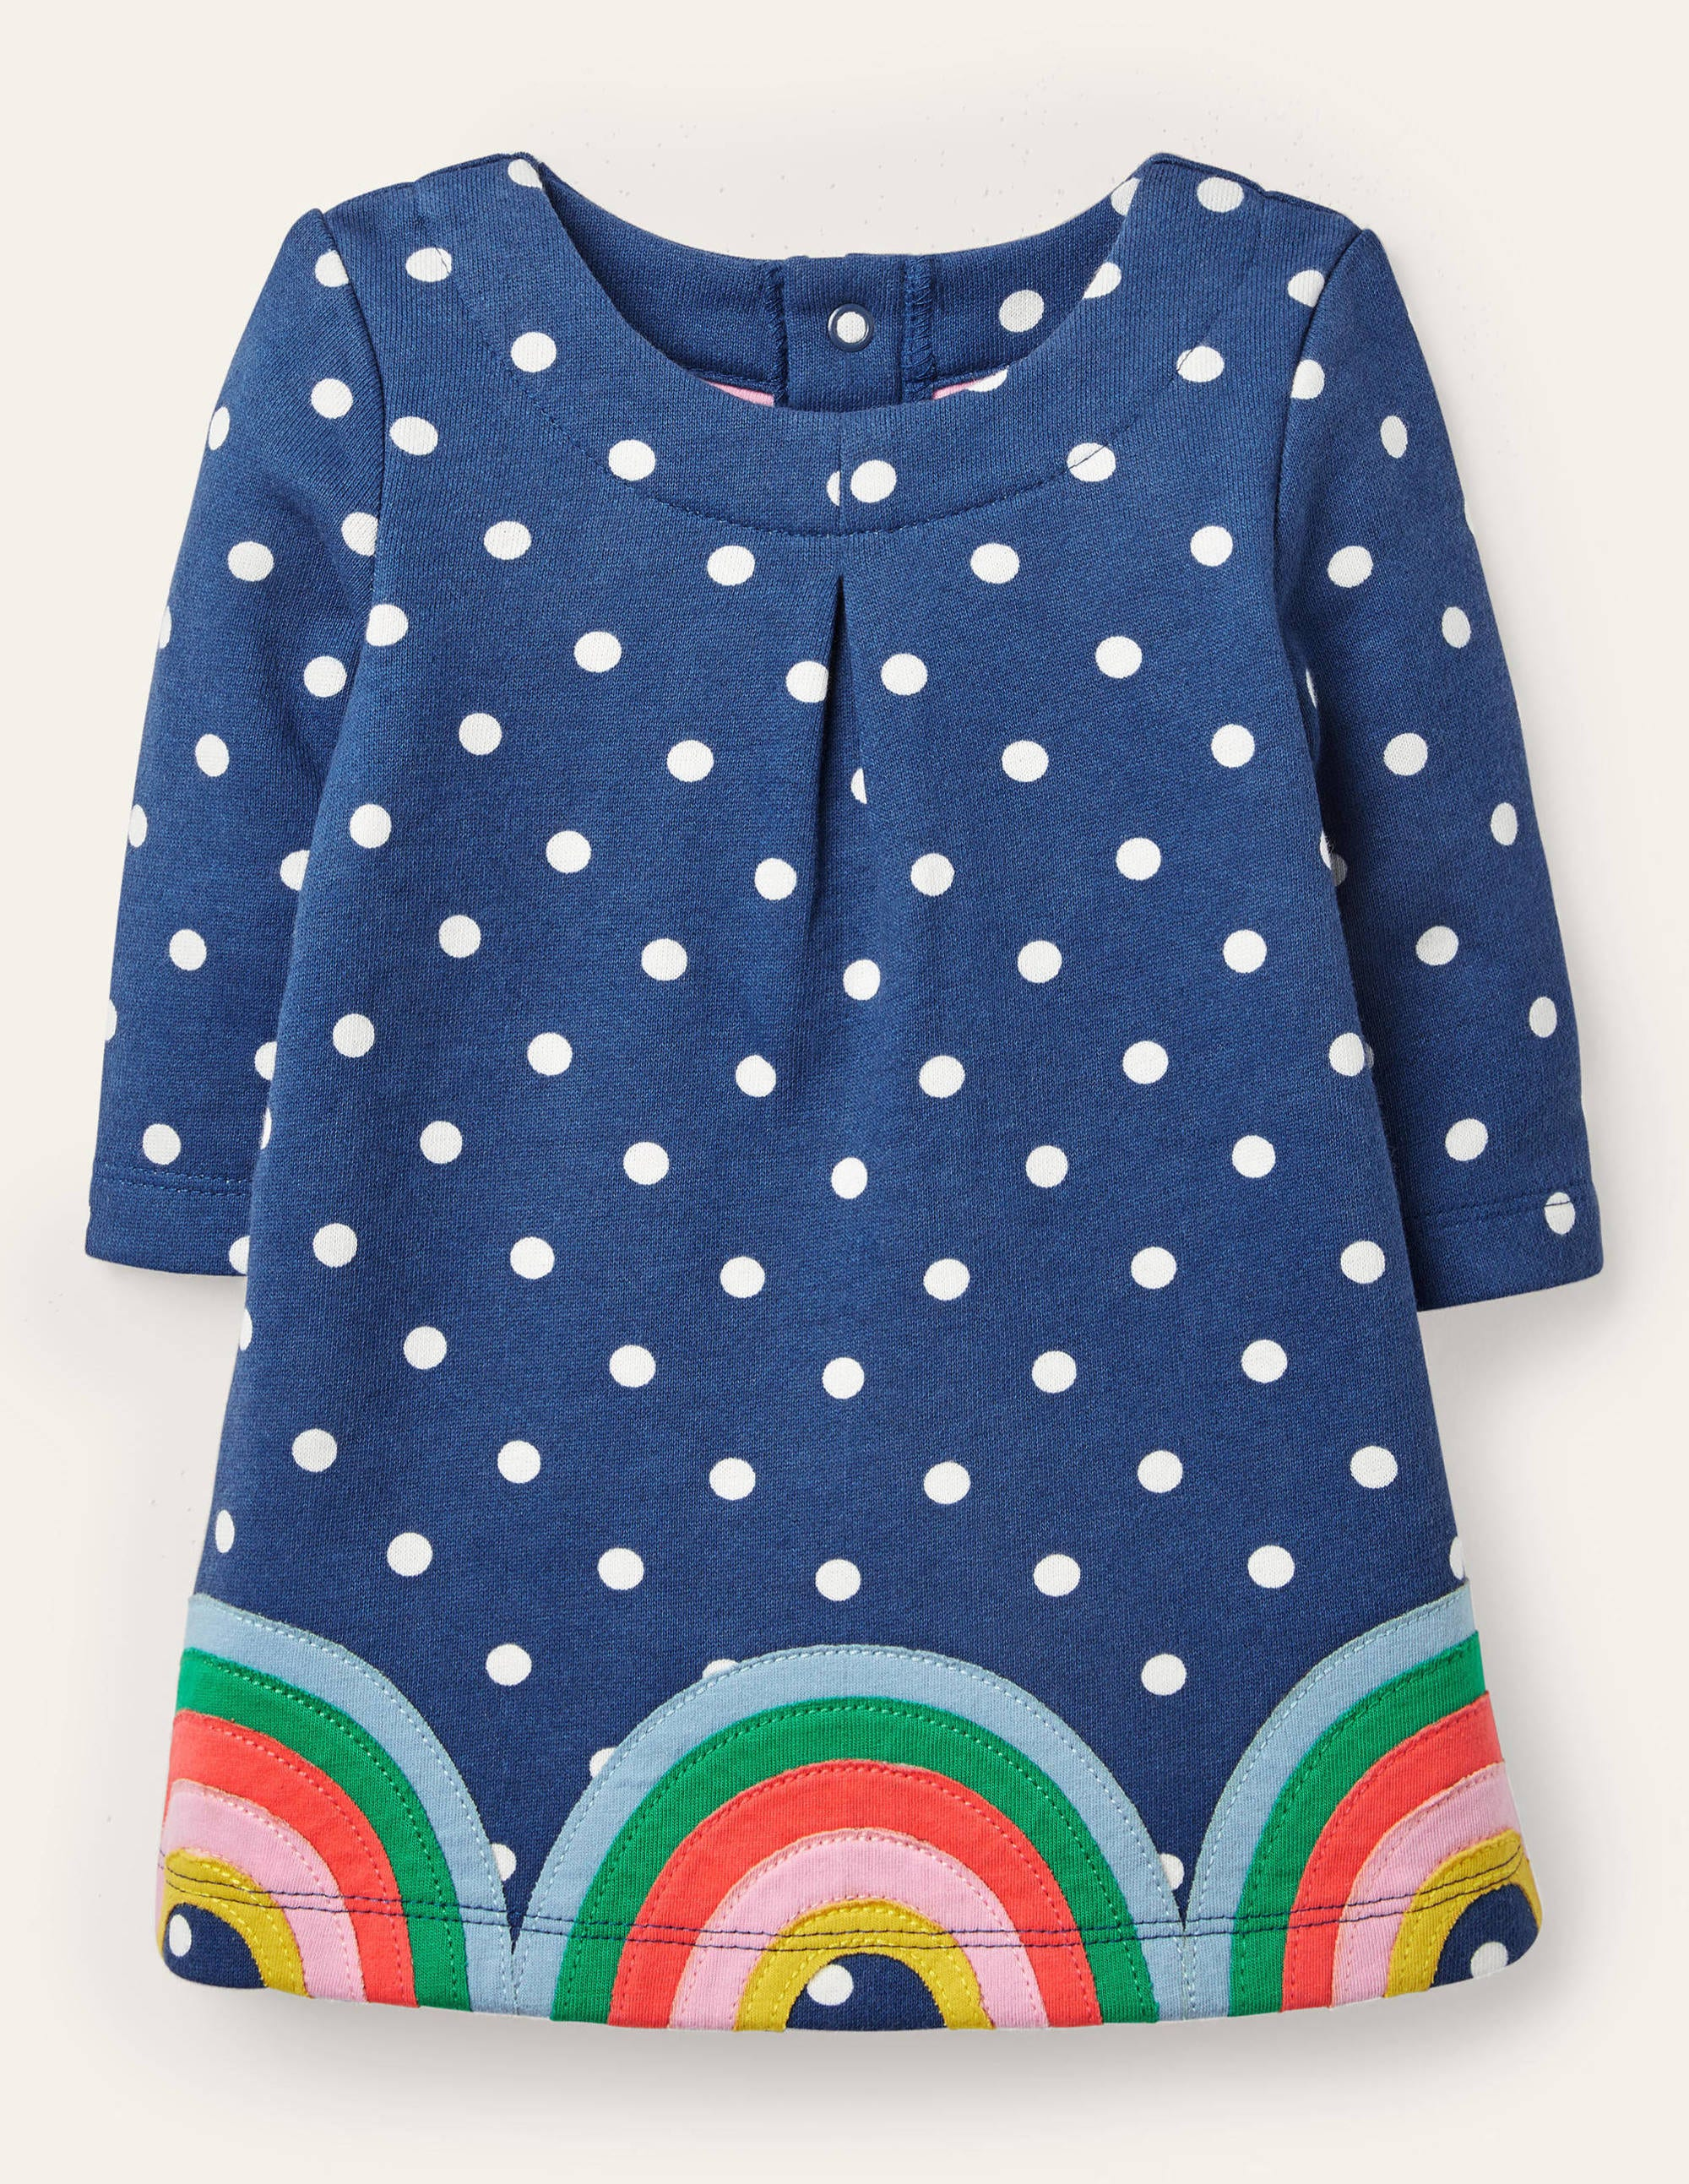 Boden Cosy Sweatshirt Dress - Elizabethan Blue Spot Rainbows